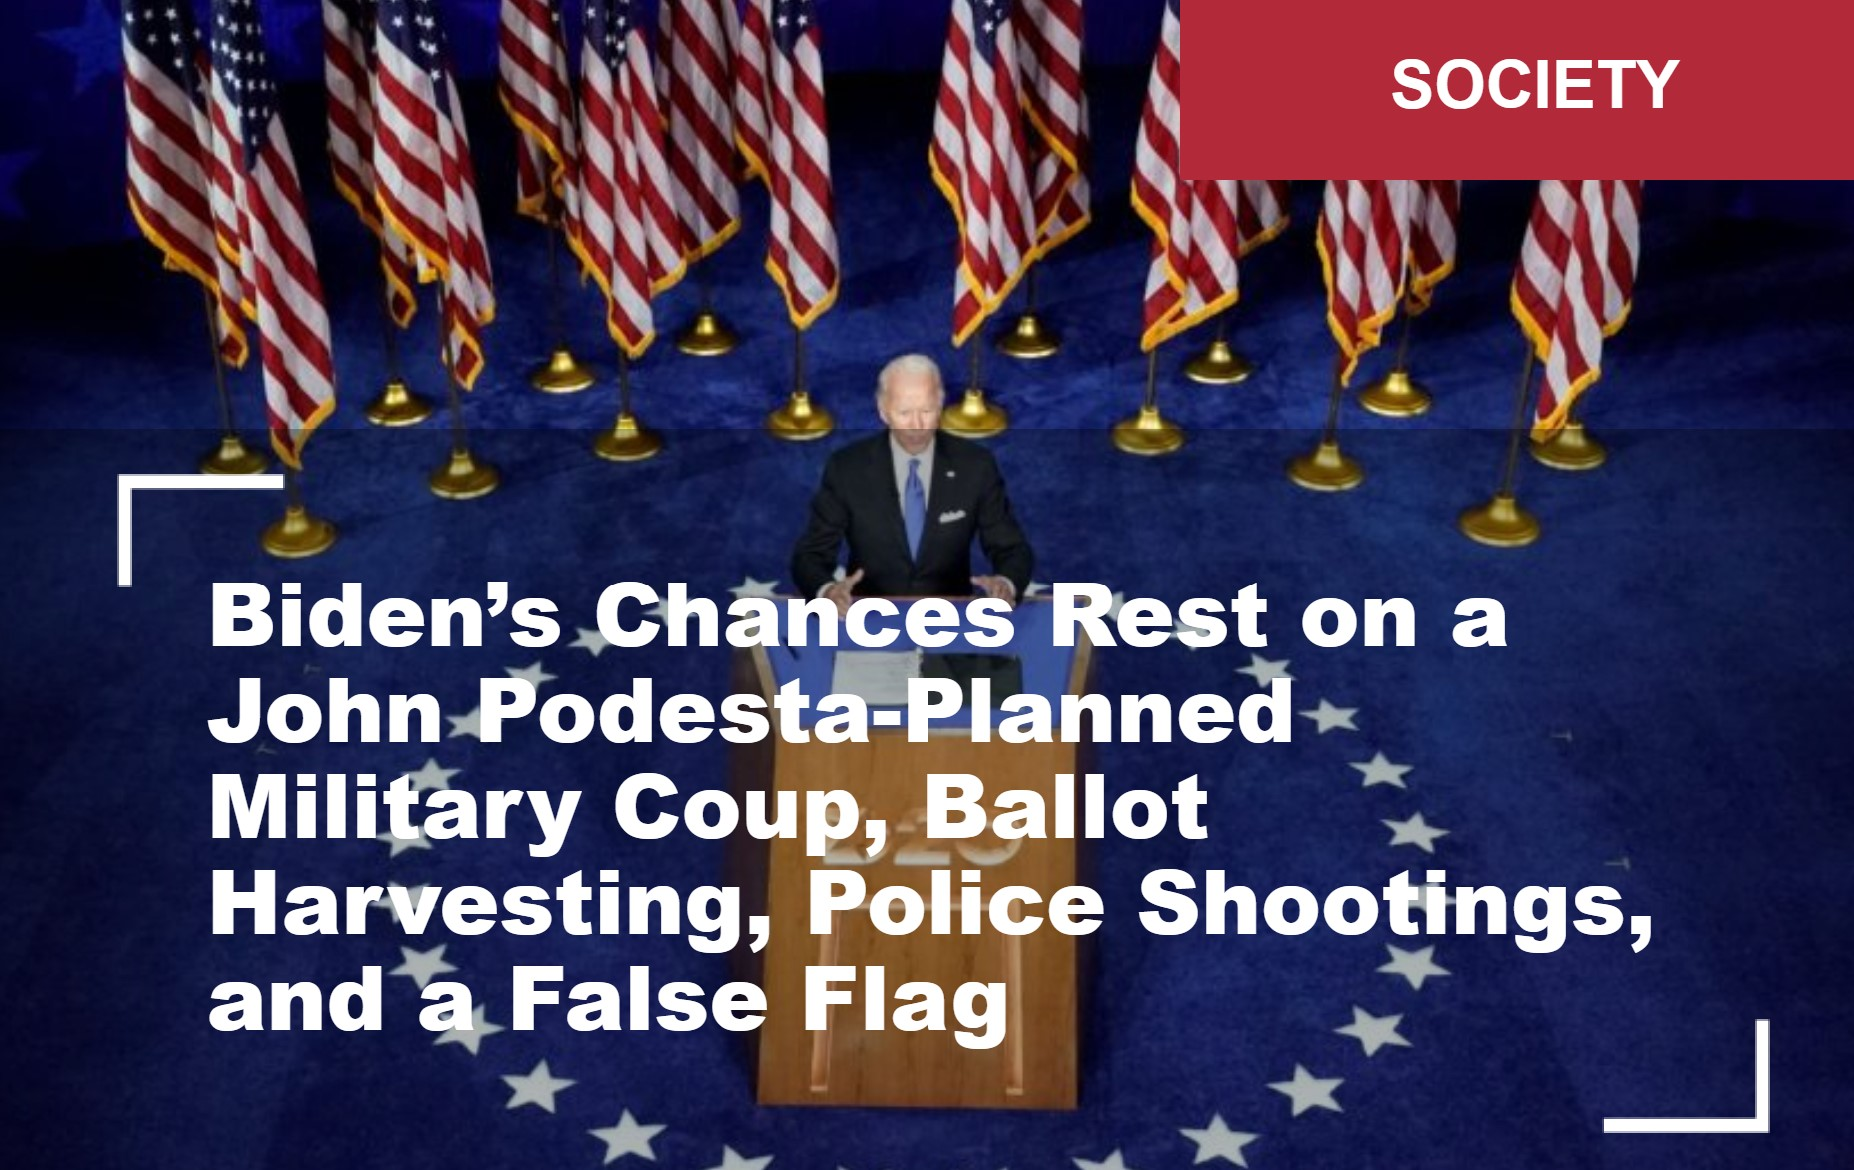 Biden's Chances Rest on a John Podesta-Planned Military Coup, Ballot Harvesting, Police Shootings, and a False Flag